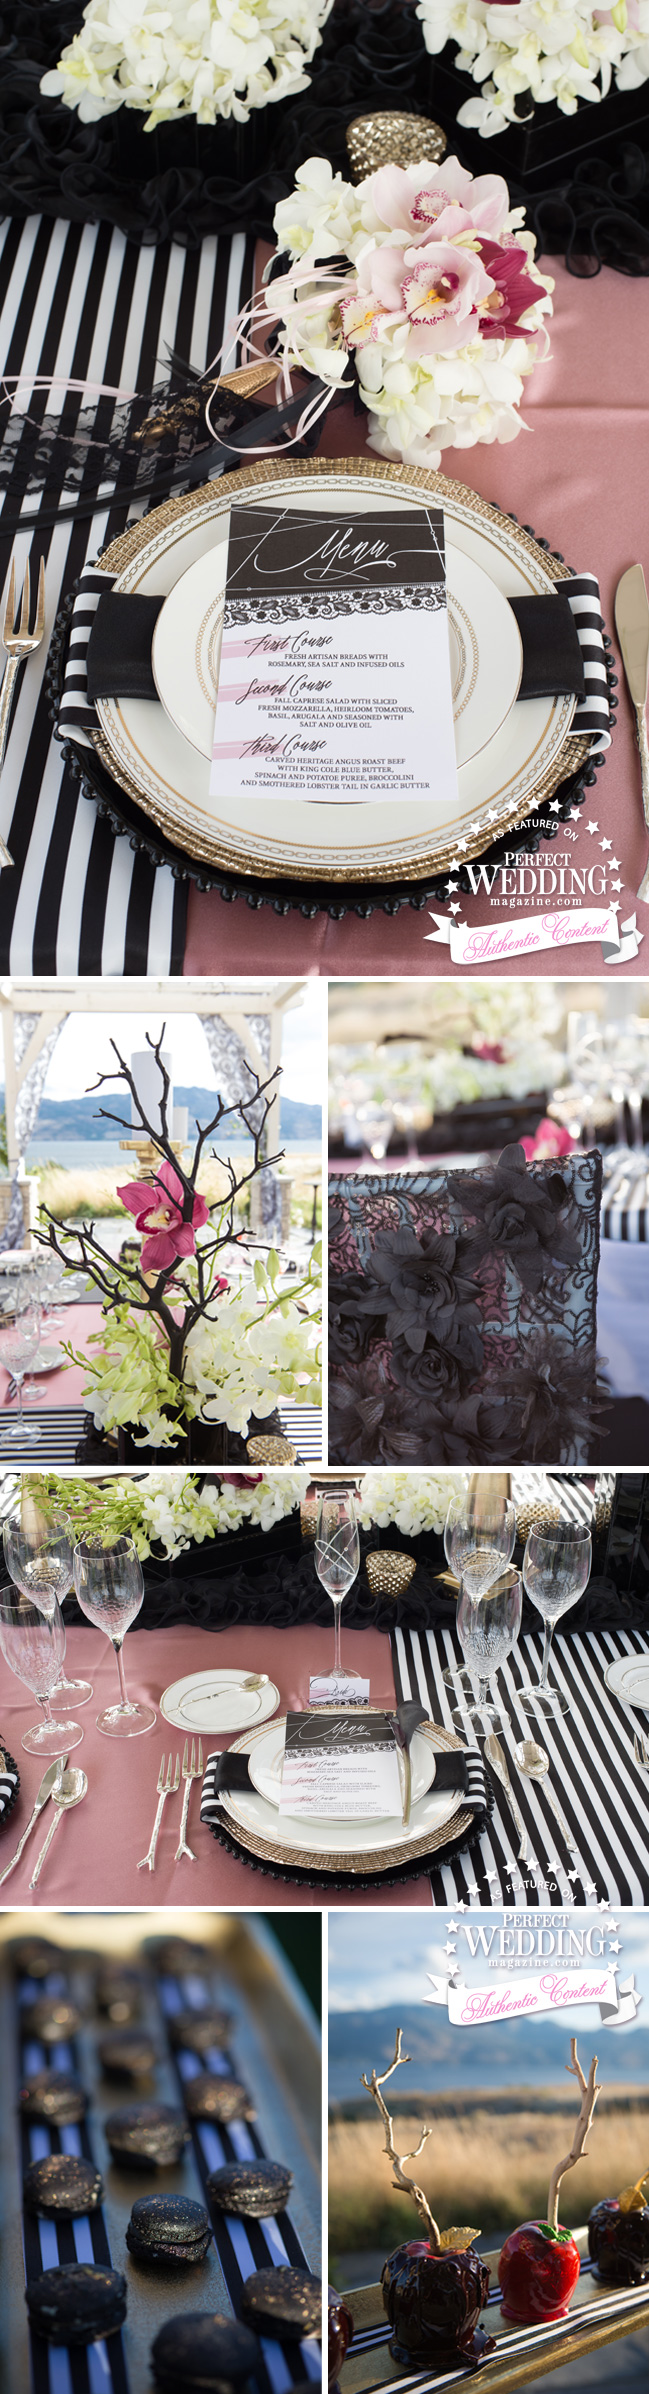 Mary Poppins, Wedding Style Shoot, Okanagan Weddings, Wedding Decor